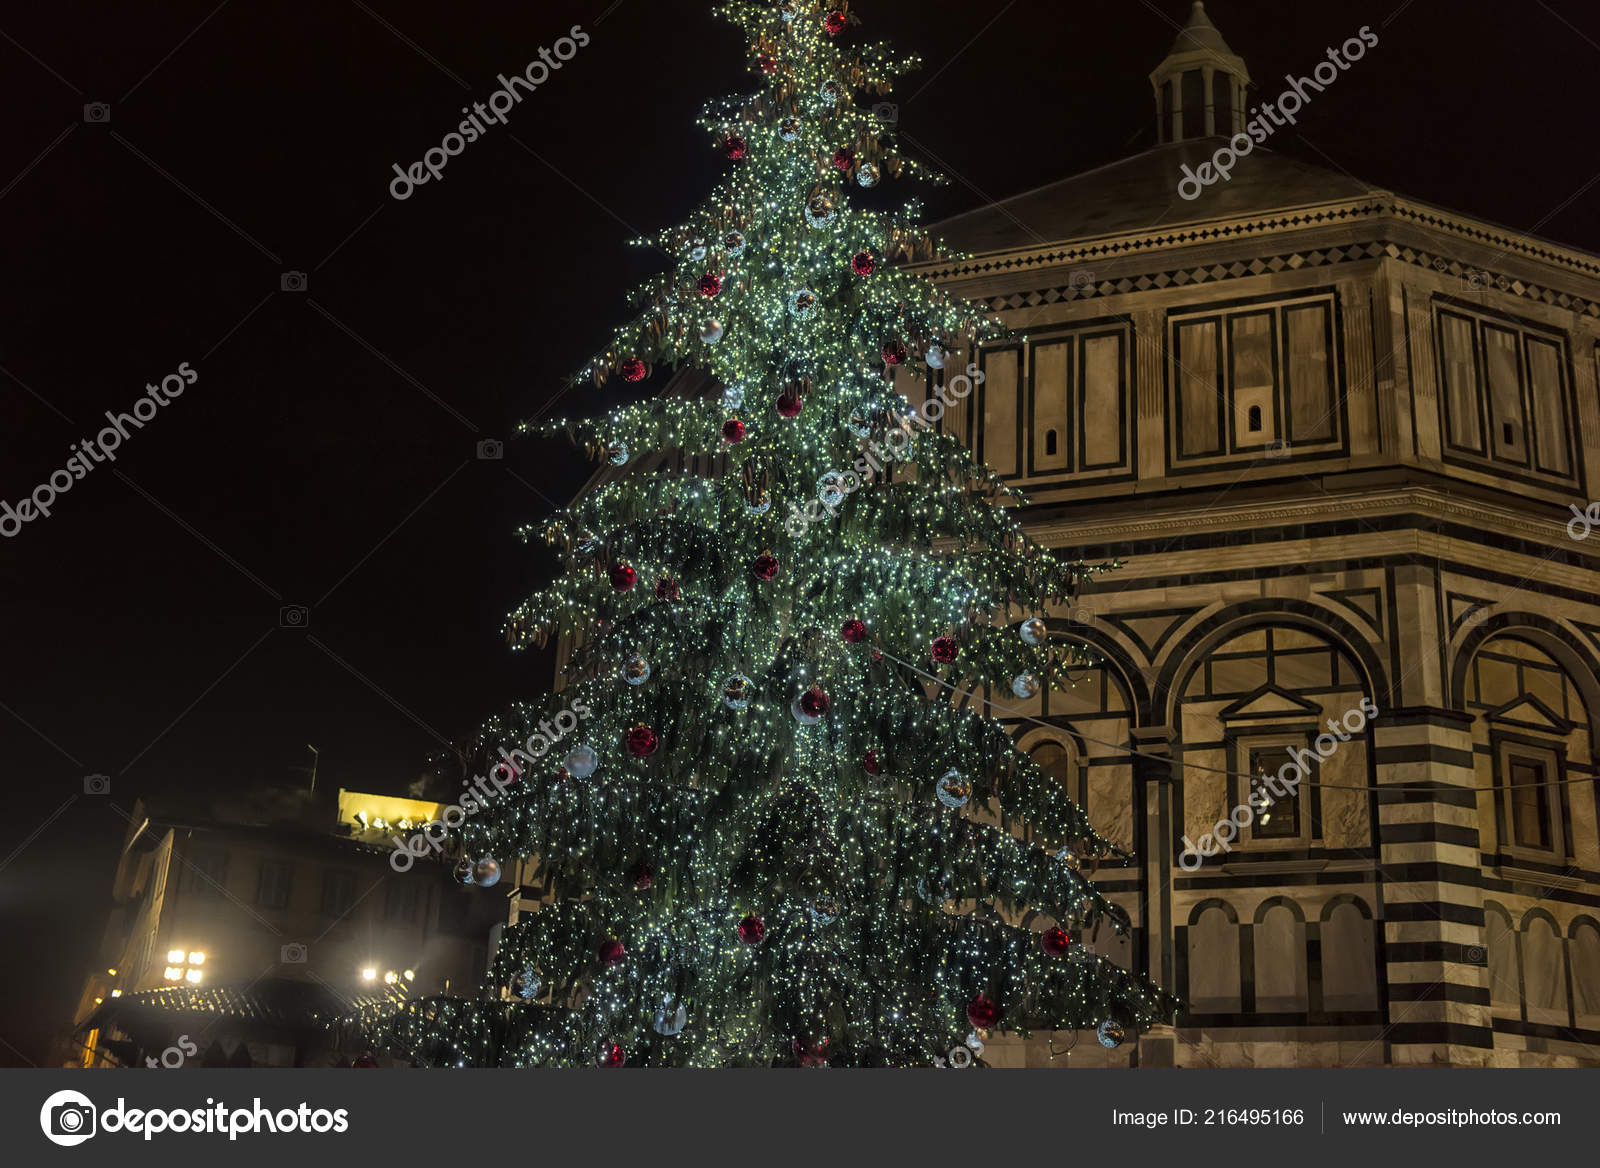 Christmas In Florence Italy.Italy Florence 2018 Florence Cathedral Christmas Tree Night